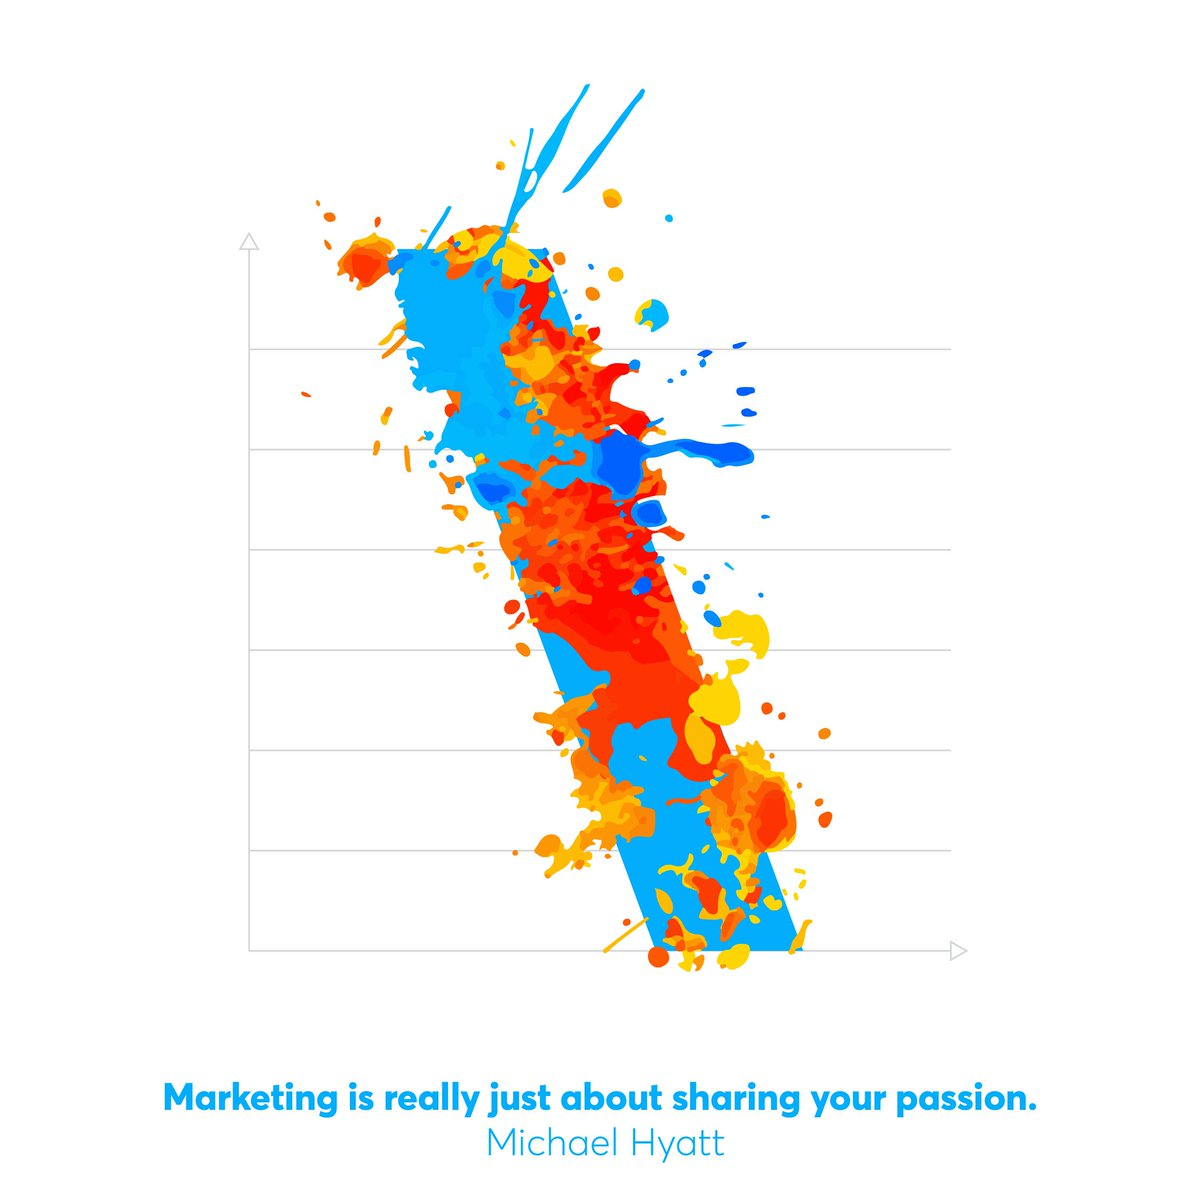 """#Sunday Motivation! • • """"#Marketing is really just about sharing your passion."""" - Michael Hyatt • • • #tbwa #tbwakuwait #kuwait #q8 #quotes #quoteoftheday #agency #advertising #creativity #creative #michaelhyatt https://t.co/GiA1fCWjNa"""